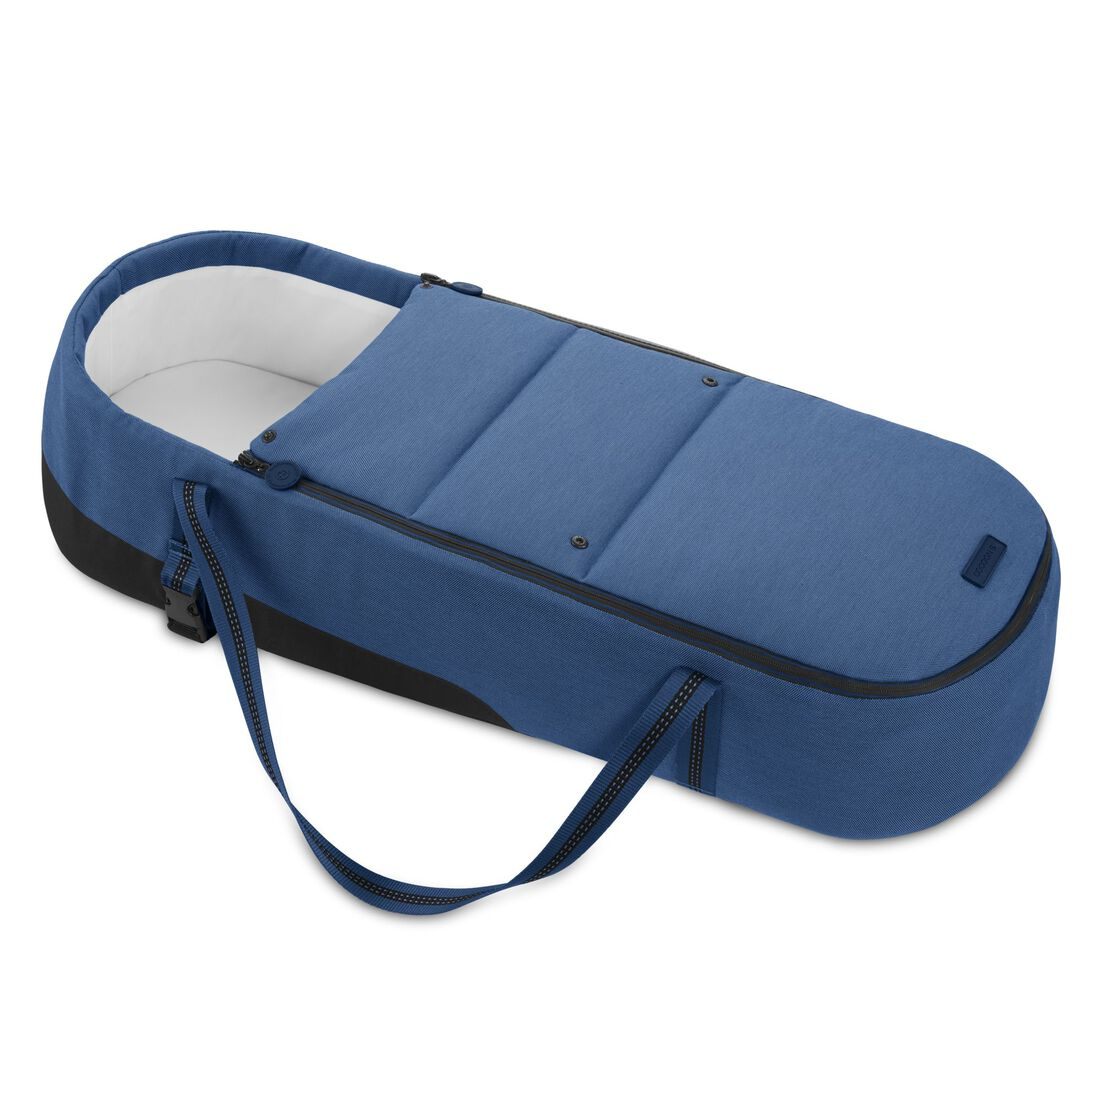 CYBEX Cocoon S - Navy Blue in Navy Blue large image number 1